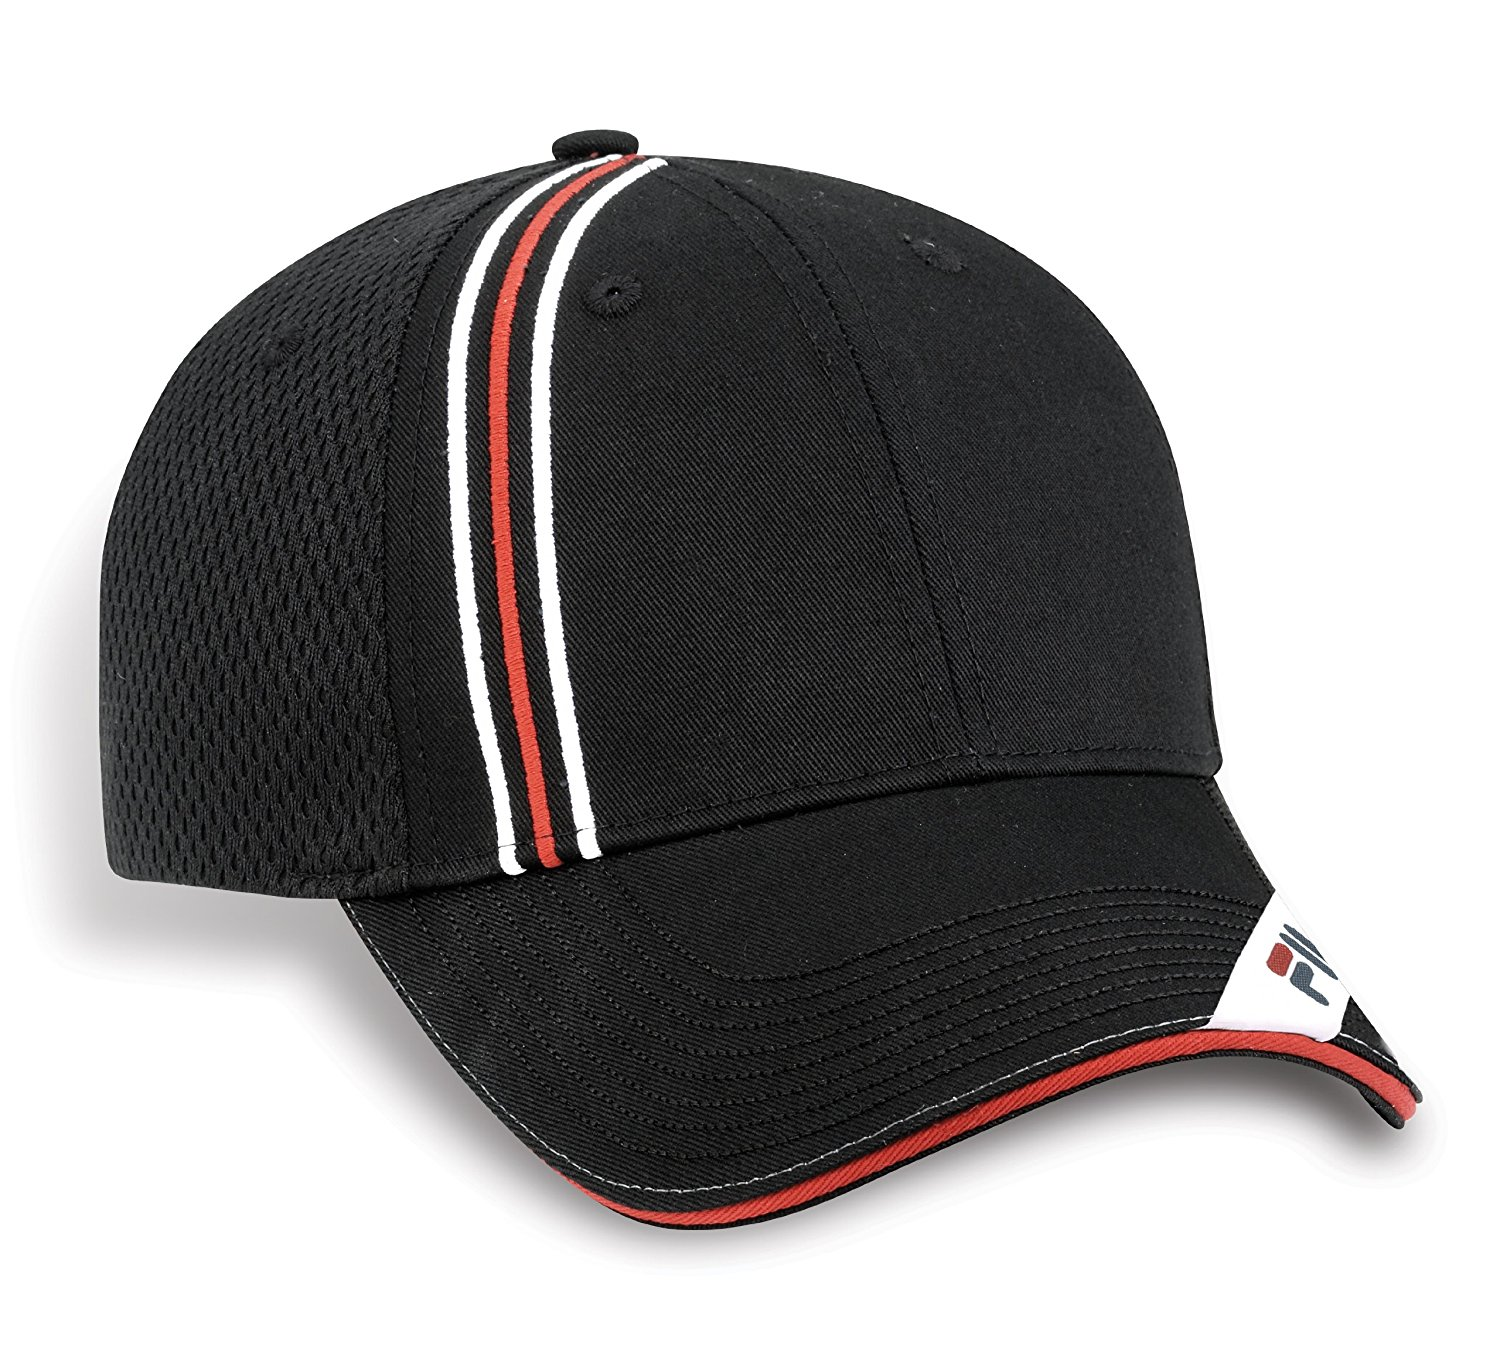 31778bca27d Get Quotations · Fila Golf Potenza Cap